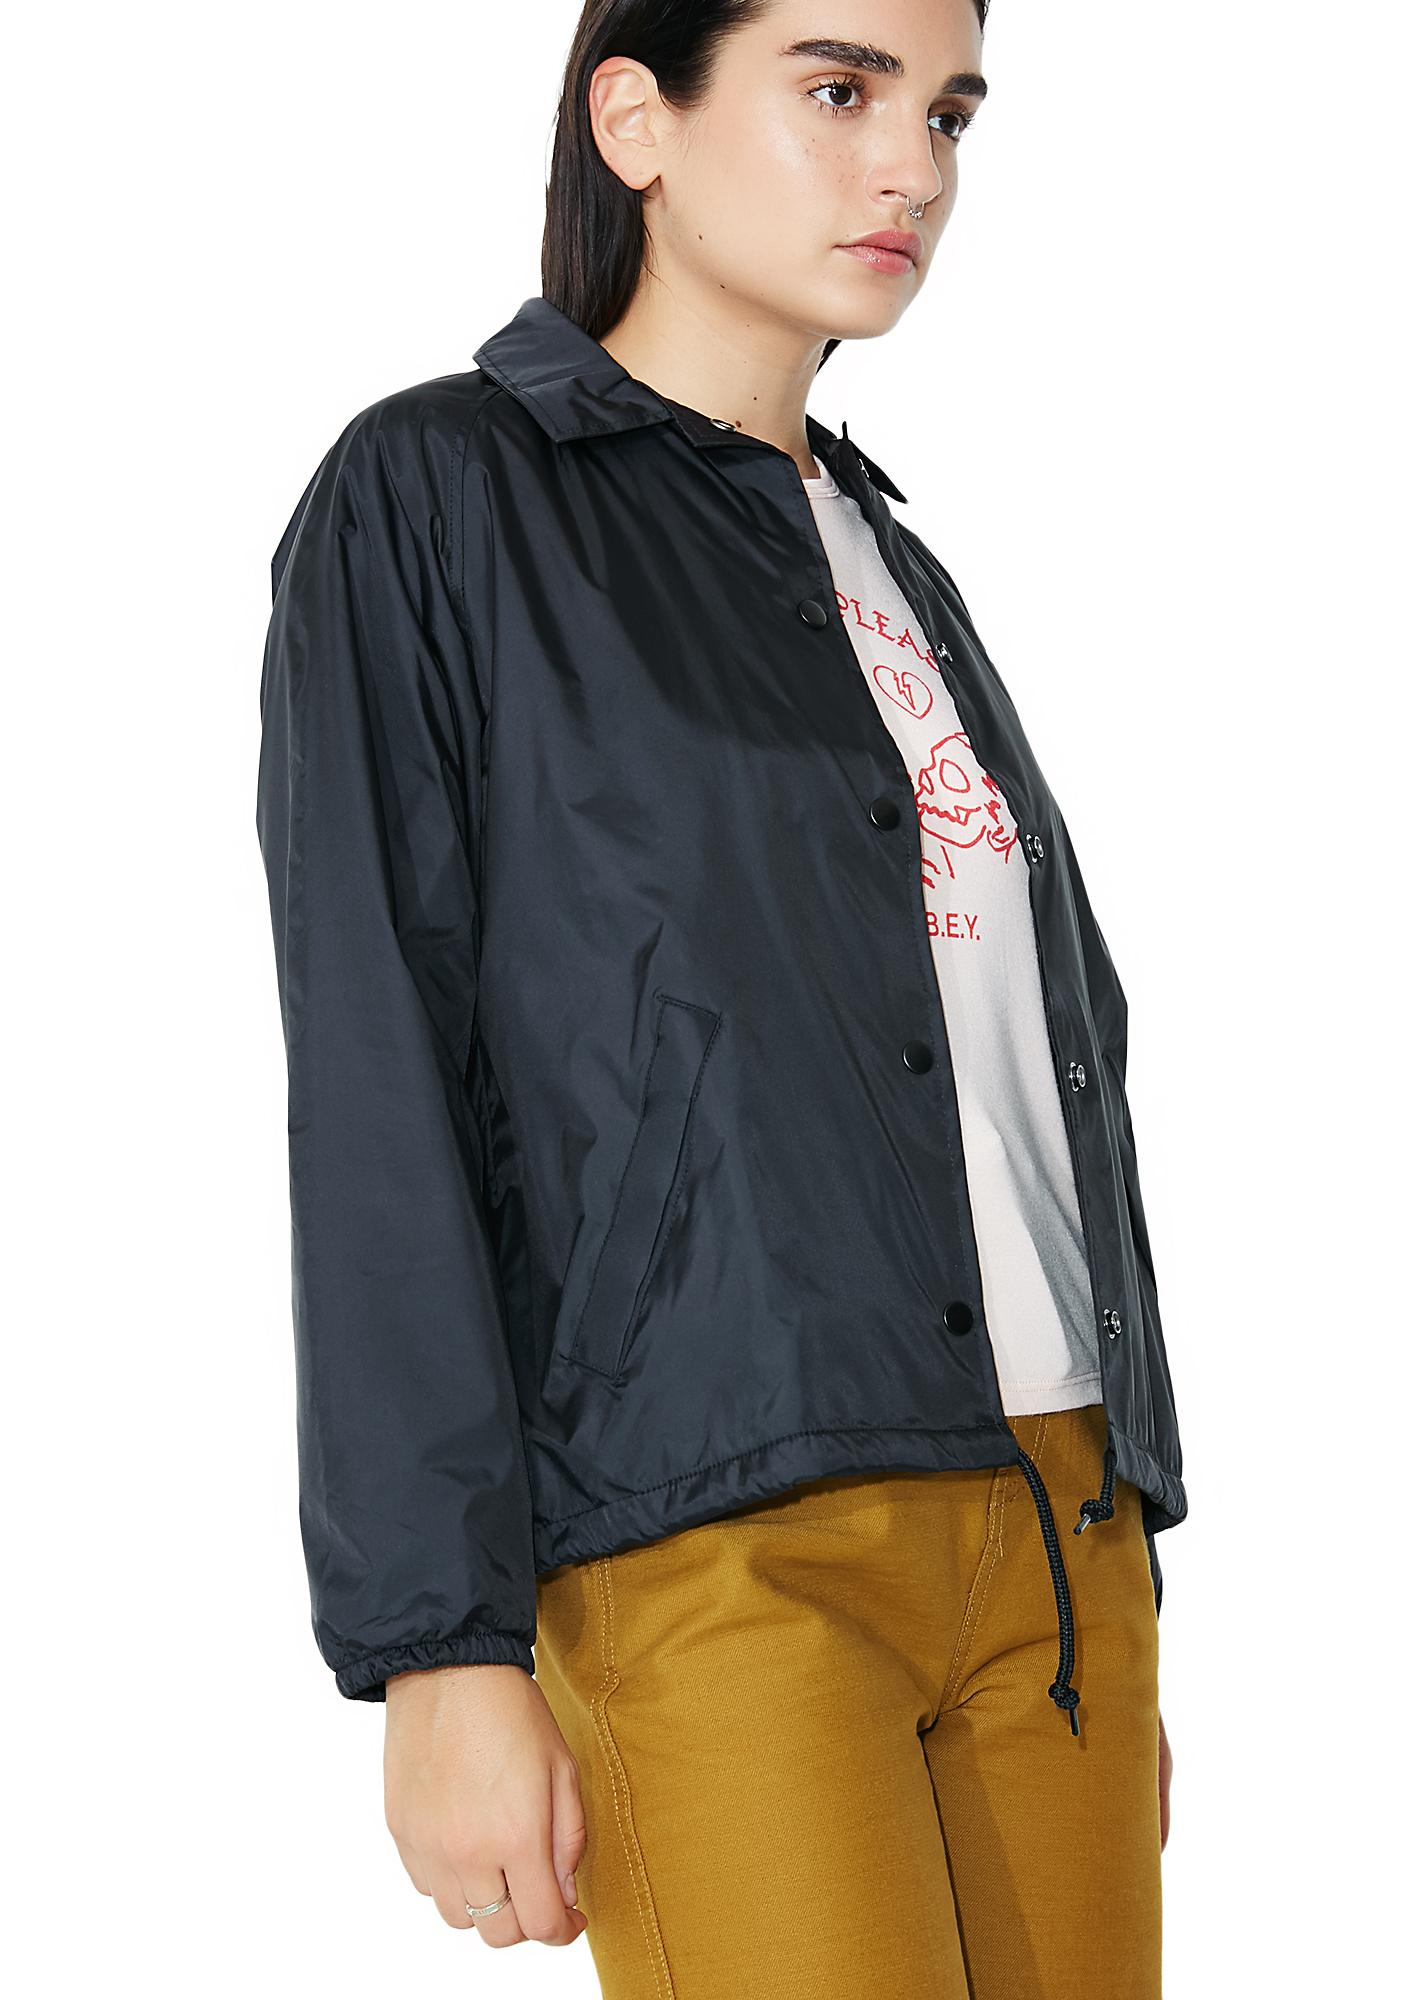 Obey Forbidden Pleasures Coach Jacket